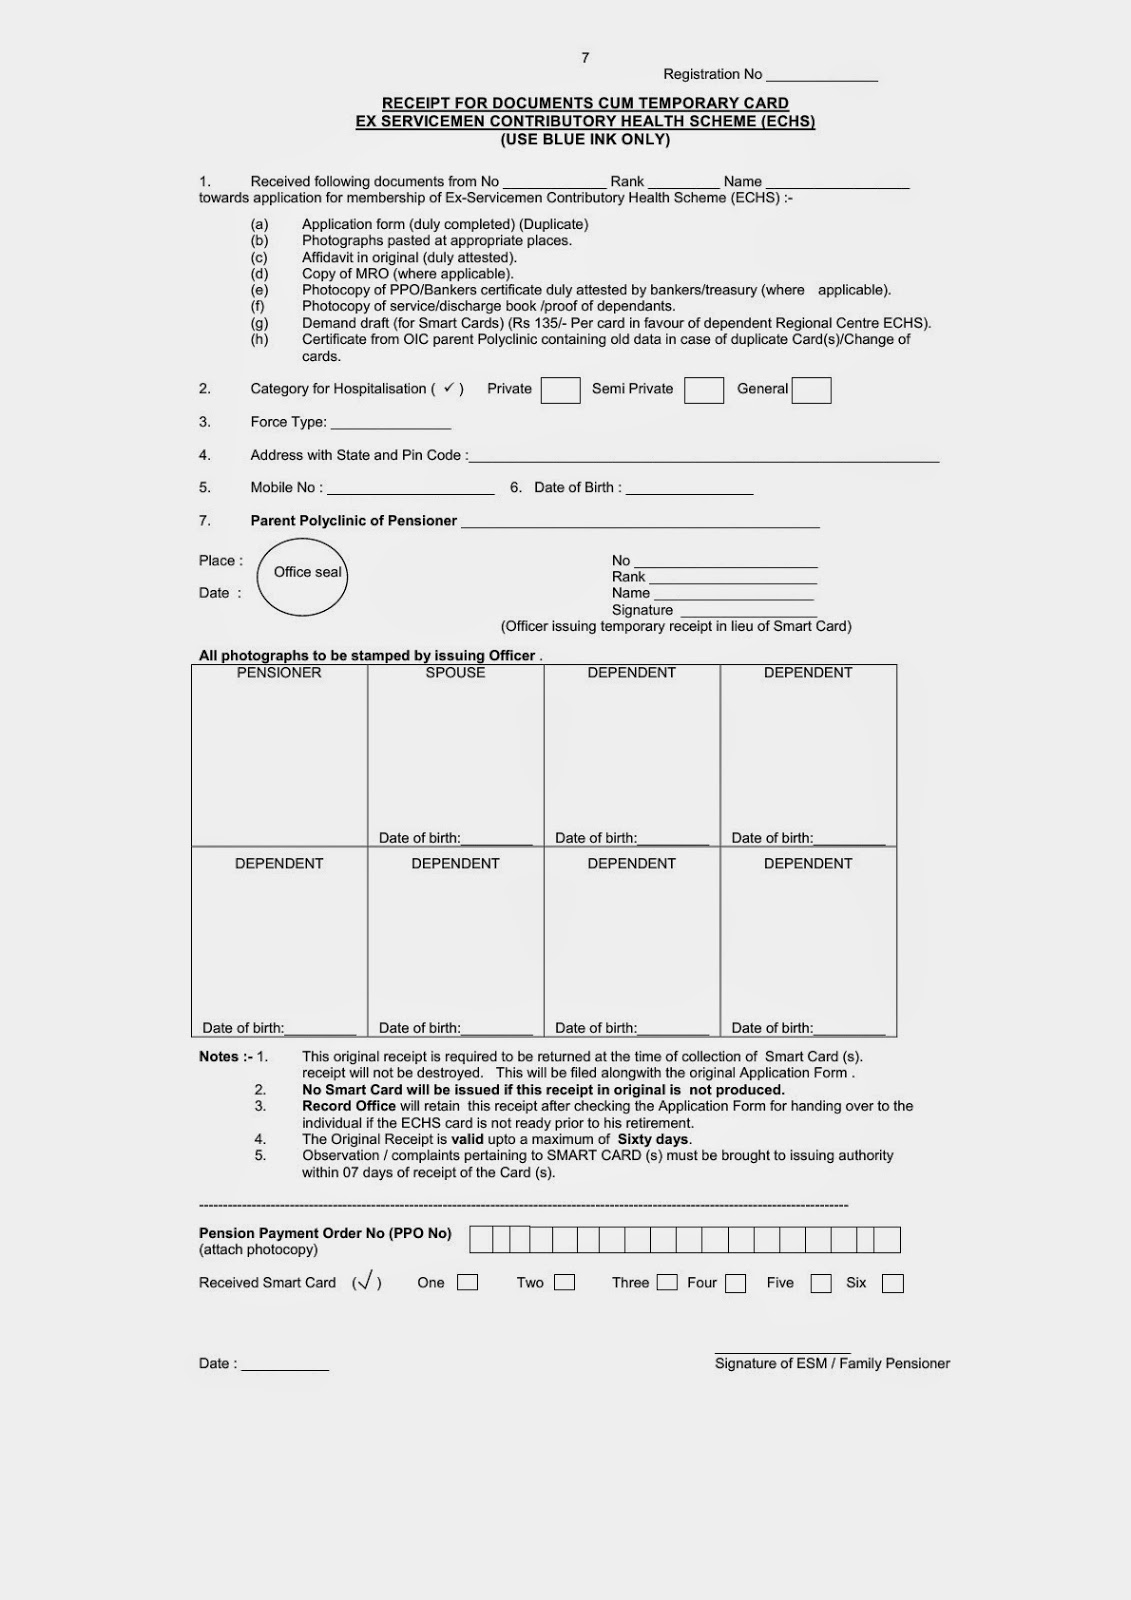 Echs application form for membership rev 2015 central echsapplicationformformembershipreceiptofdocument thecheapjerseys Image collections